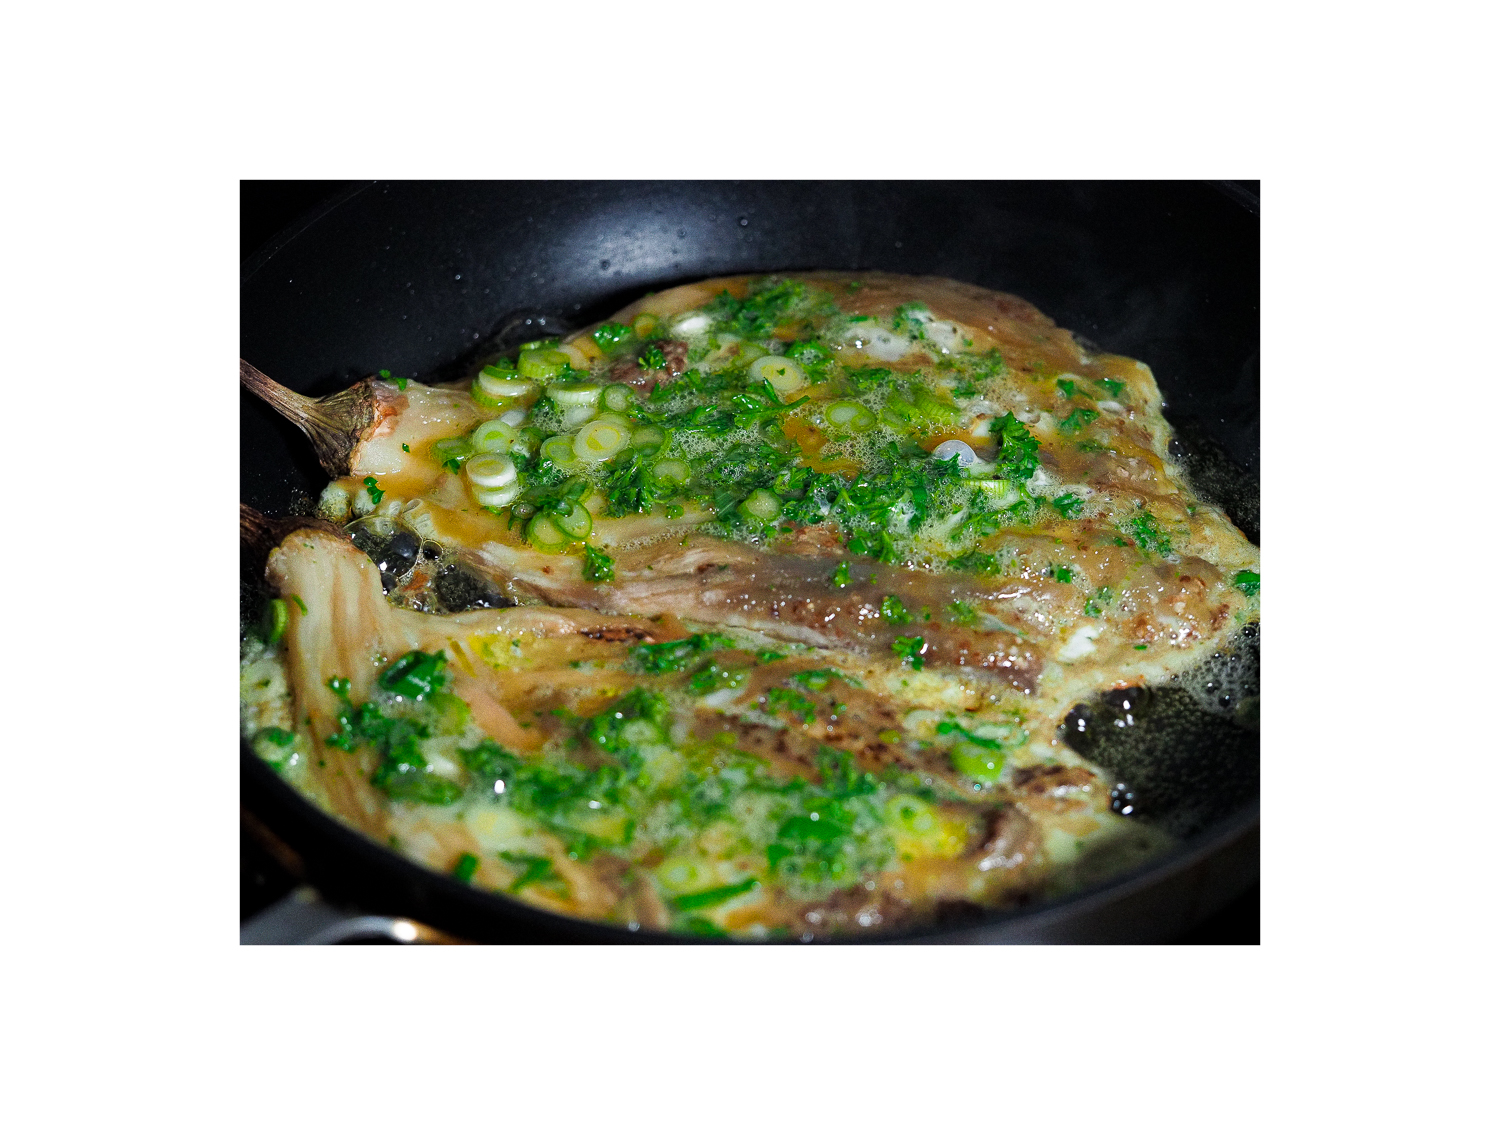 Cooking eggplant omelette in a pan.